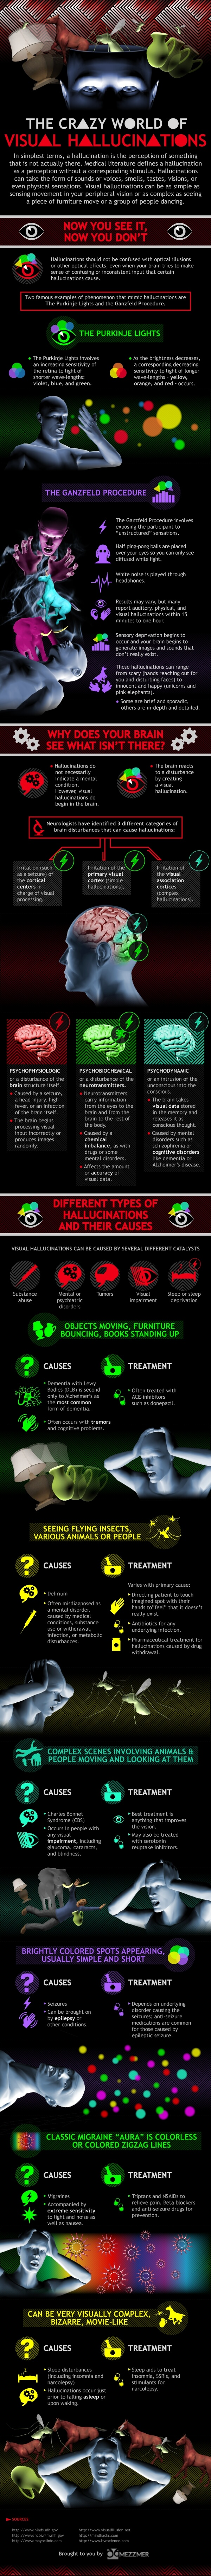 THE CRAZY WORLD OF VISUAL HALLUCINATIONS Infographic